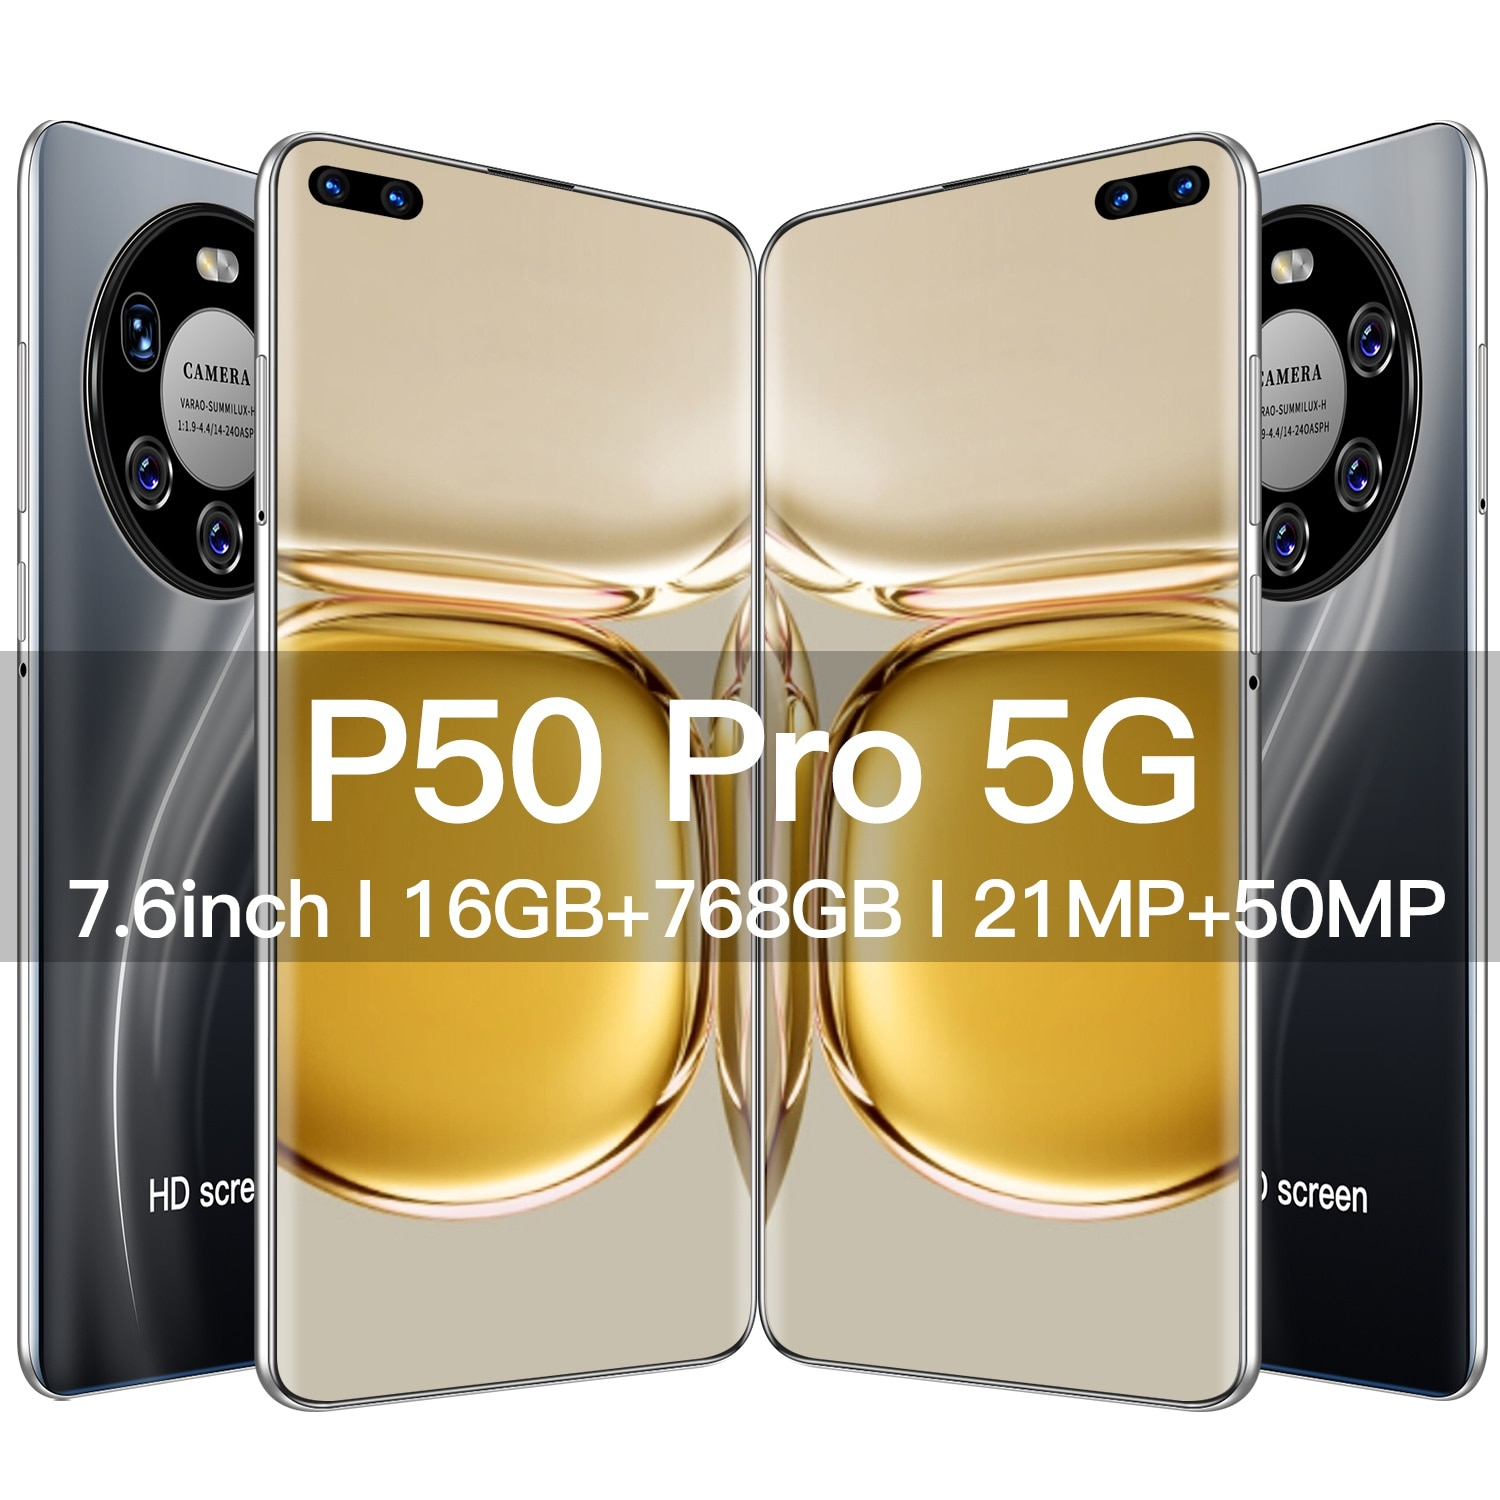 2021 New P50 Pro 16GB+768GB 6000Mah Unlocked Smart Phone Android 11 7.6 Inch 4G/5G Network 21MP+50MP HD Camera 5G Cell Phone GPS